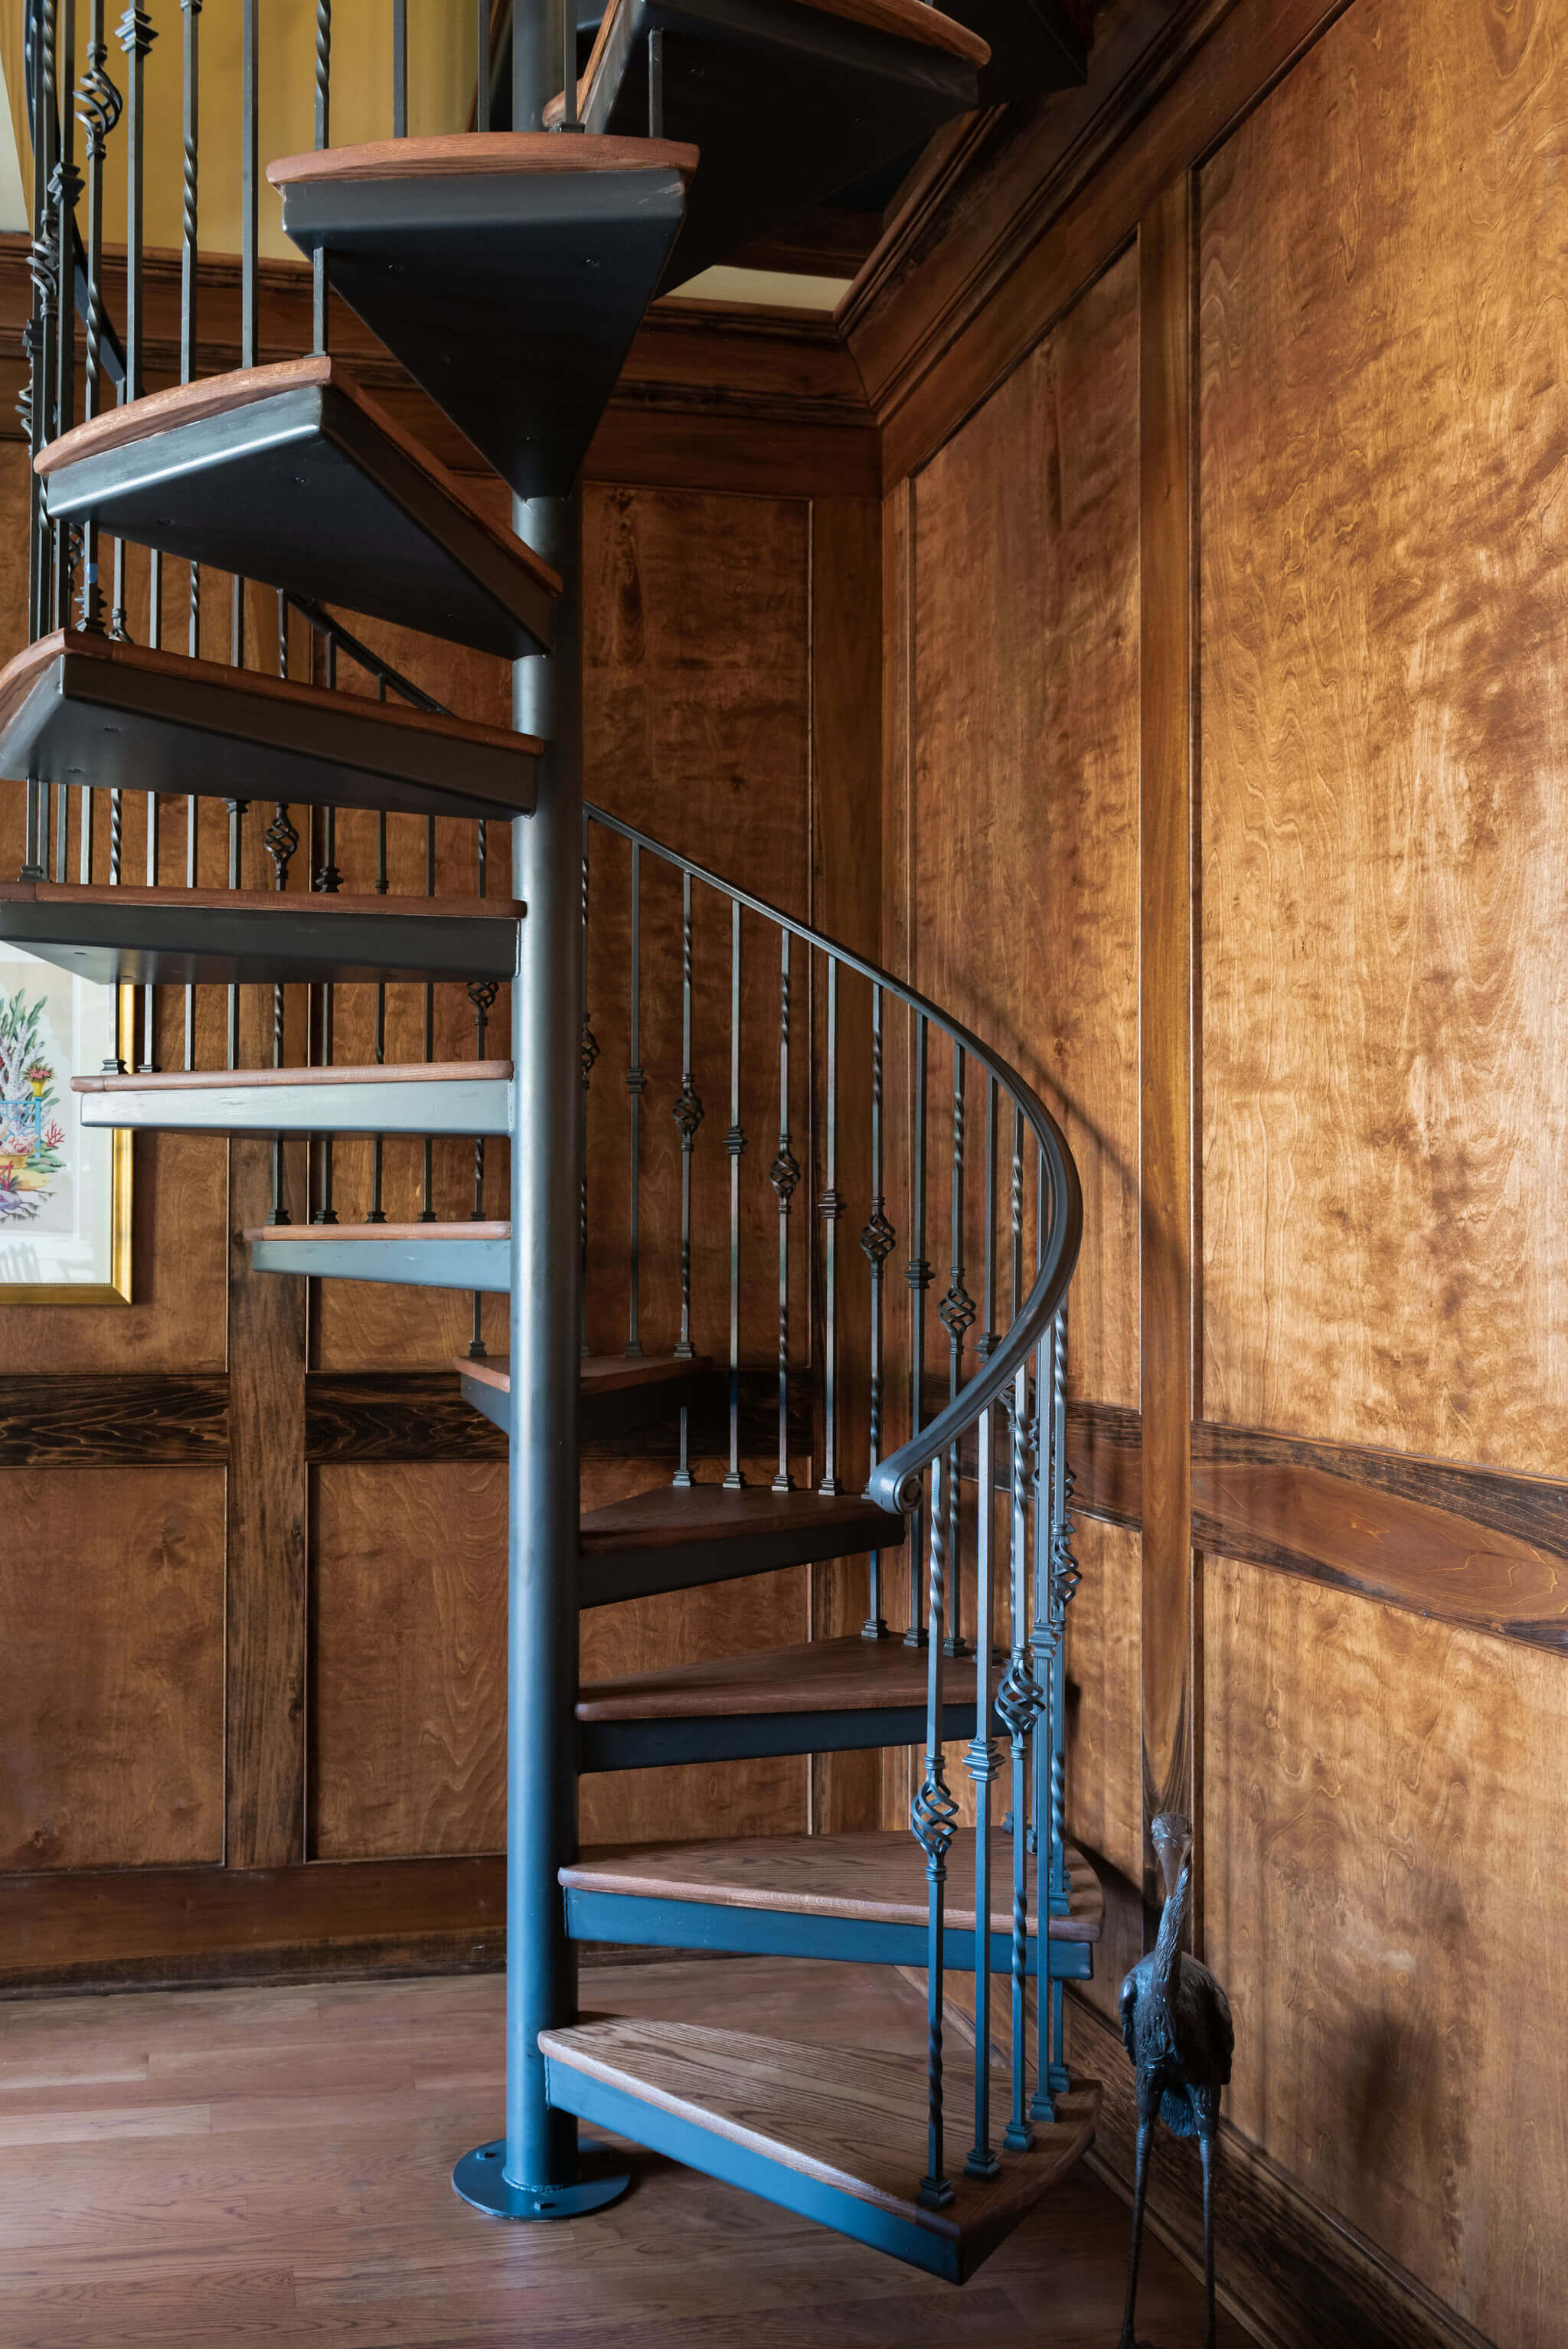 Spiral stair case with wood finished with Rubio Monocoat products.